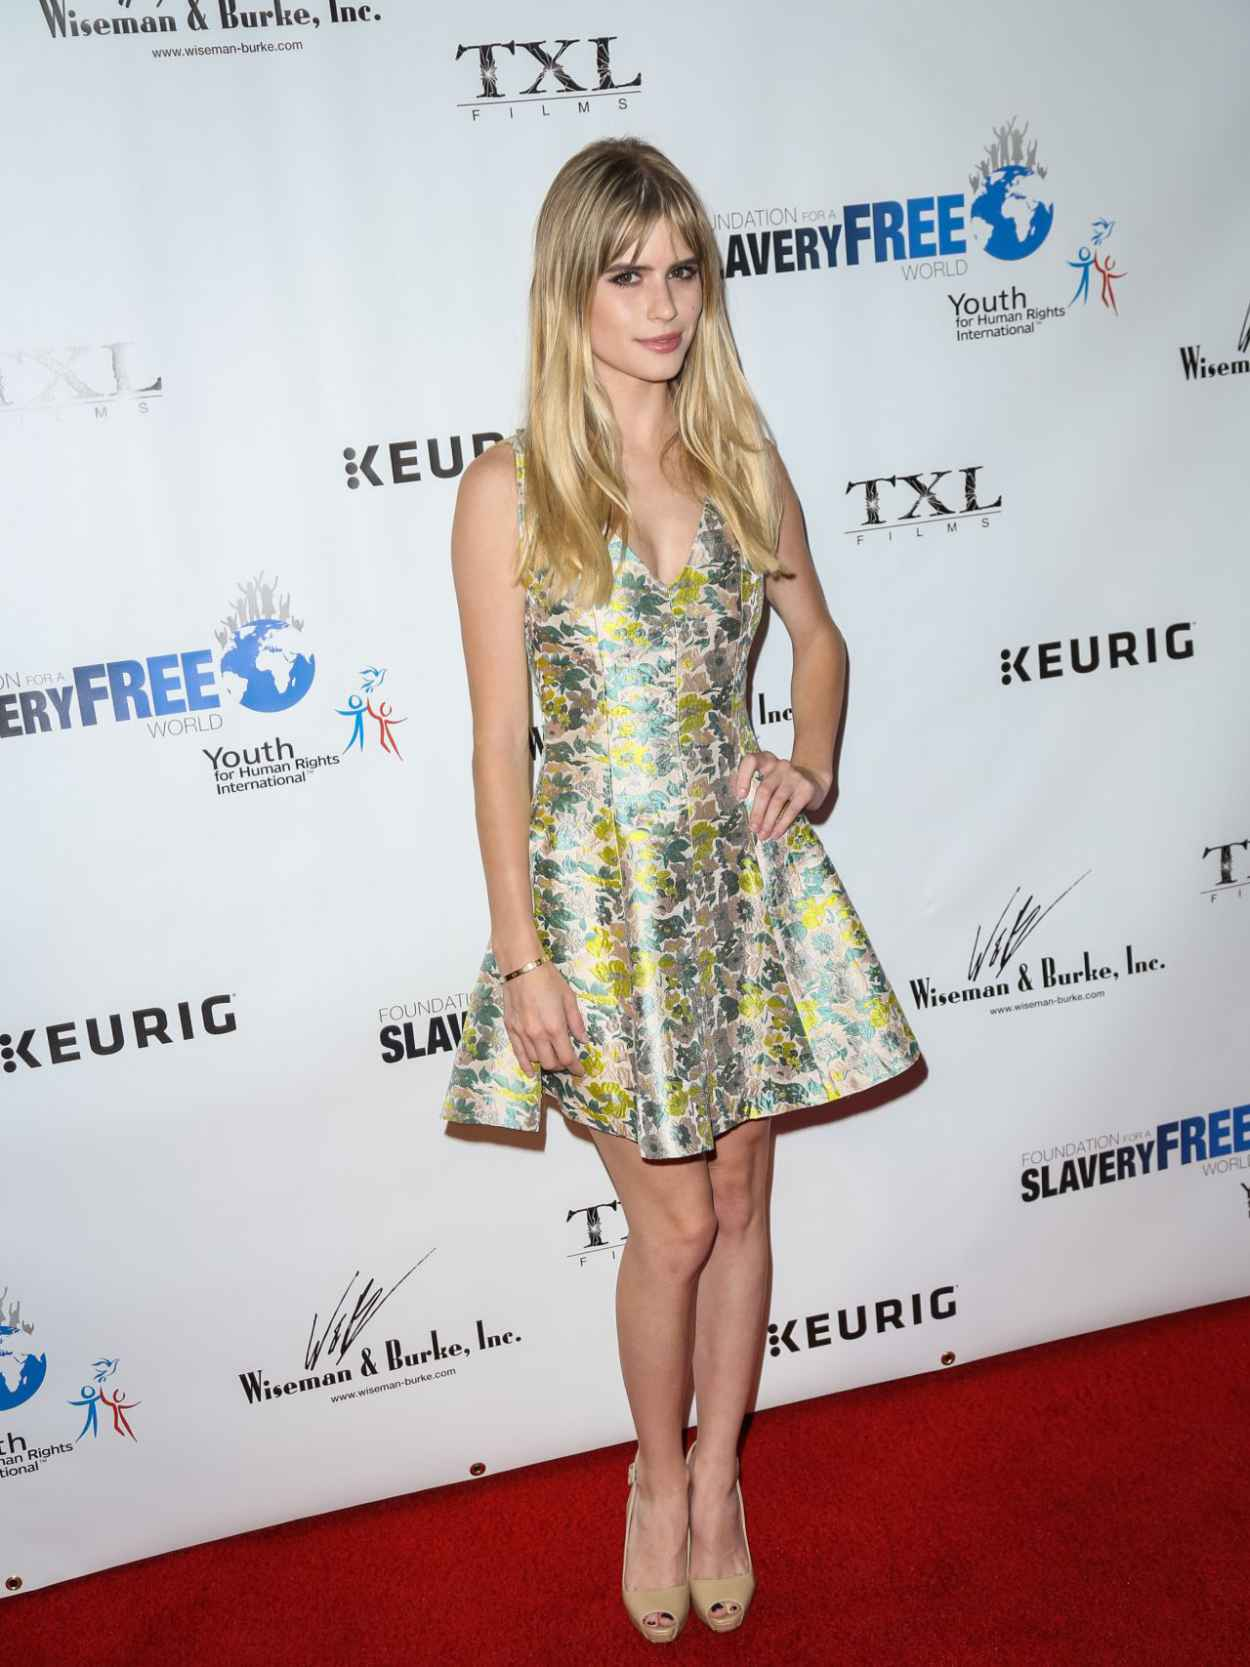 carlson young birthdaycarlson young gif, carlson young icons, carlson young pretty little liars, carlson young site, carlson young gif icons, carlson young png, carlson young icons tumblr, carlson young listal, carlson young birthday, carlson young daily, carlson young reddit, carlson young imdb, carlson young films, carlson young pack, carlson young facebook, carlson young insta, carlson young instagram, carlson young fan site, carlson young twitter pack, carlson young interview